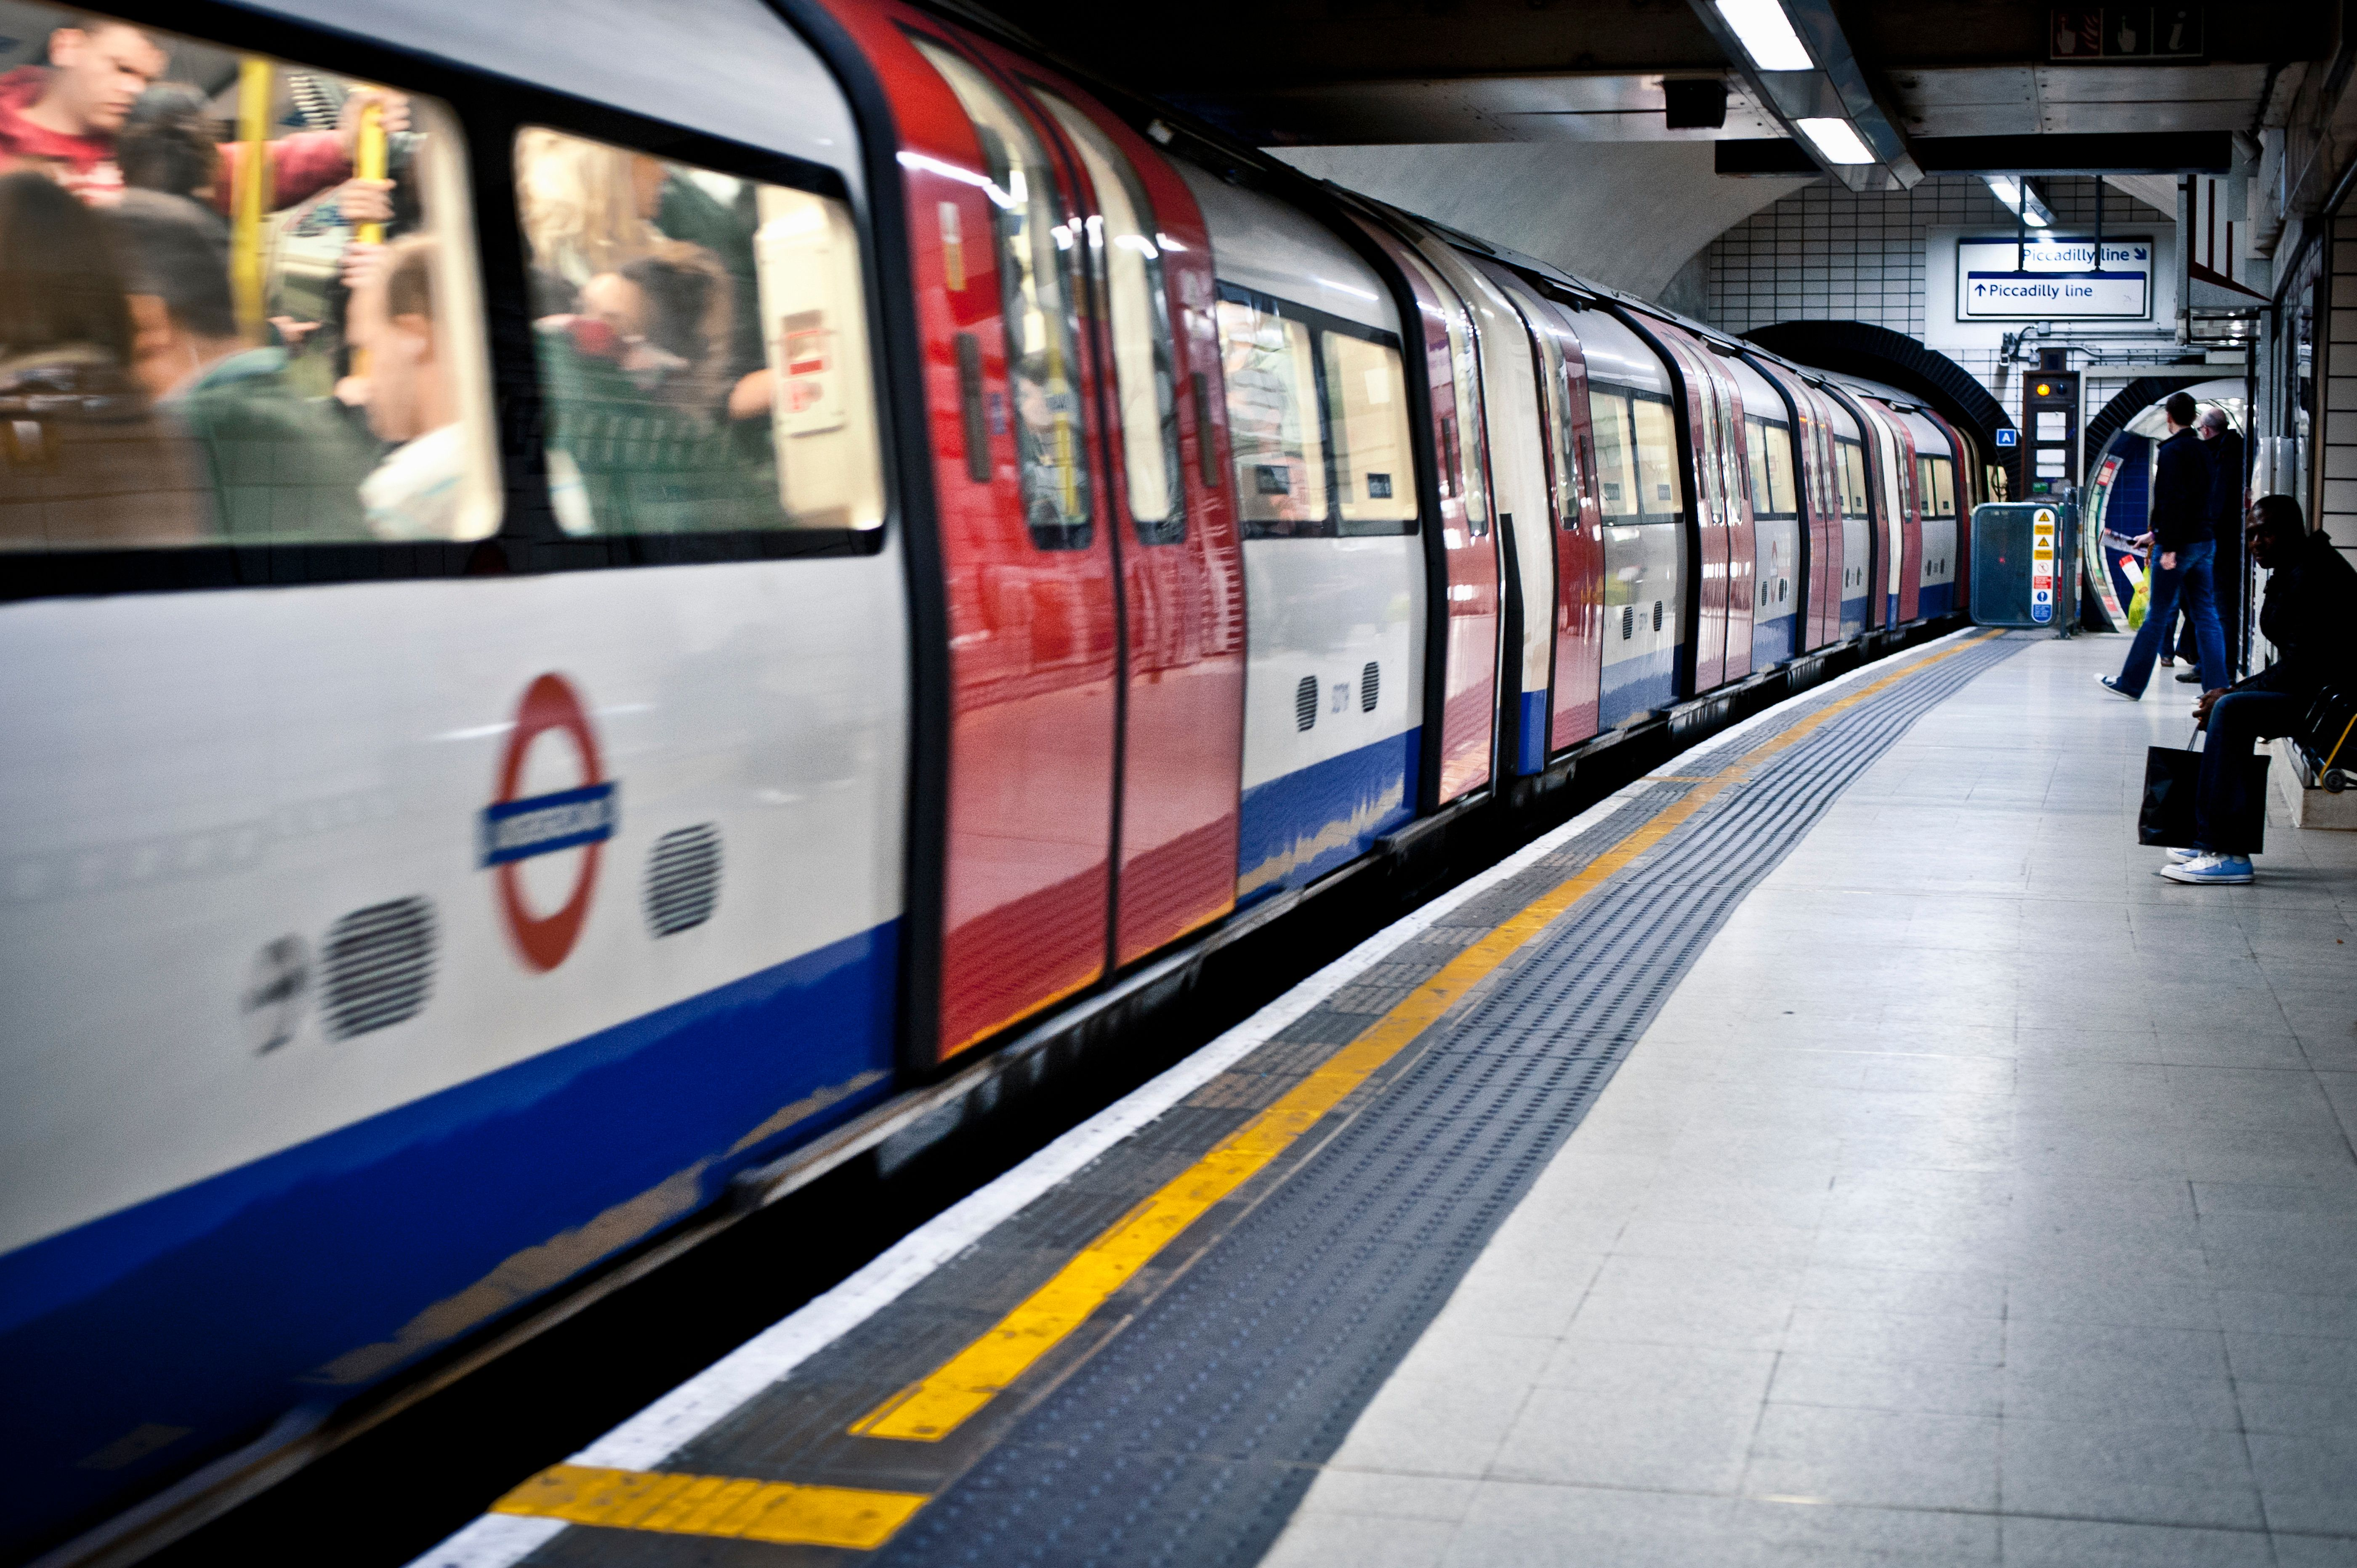 The incident occurred at Marble Arch station (file